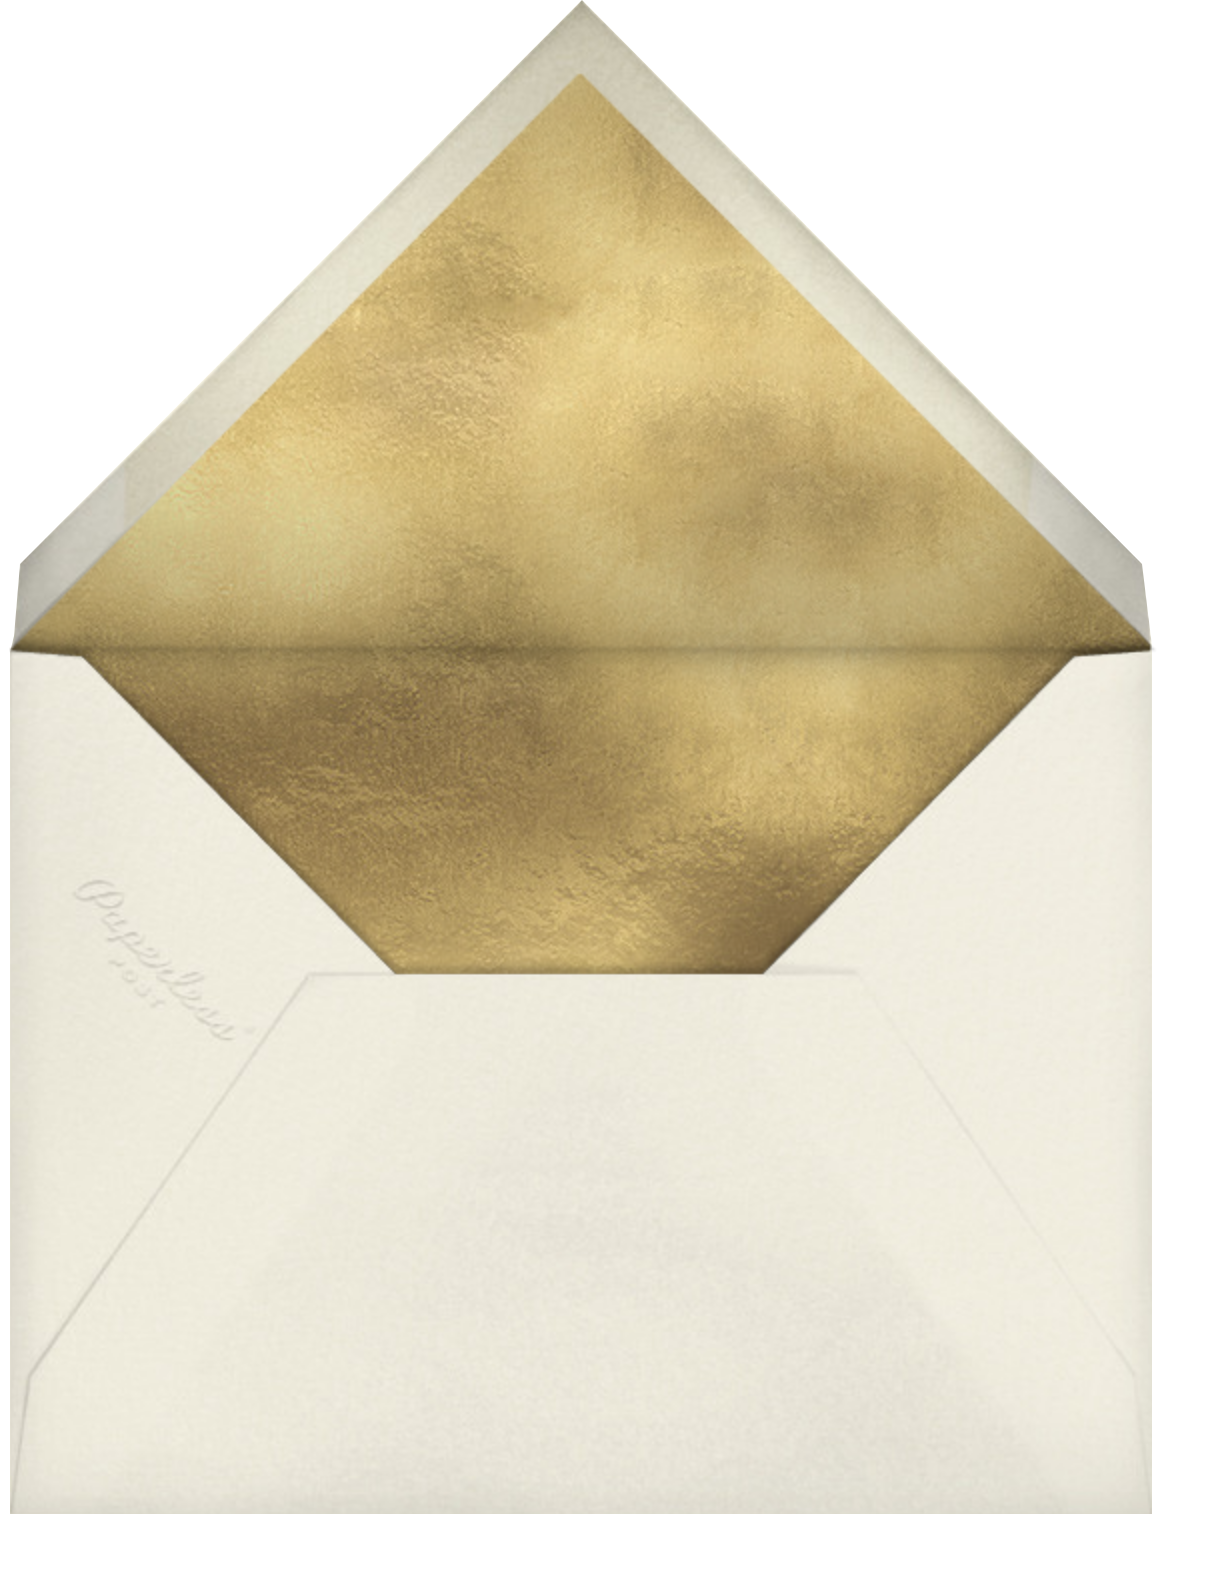 Gold Unikko - Hunter - Marimekko - Winter entertaining - envelope back